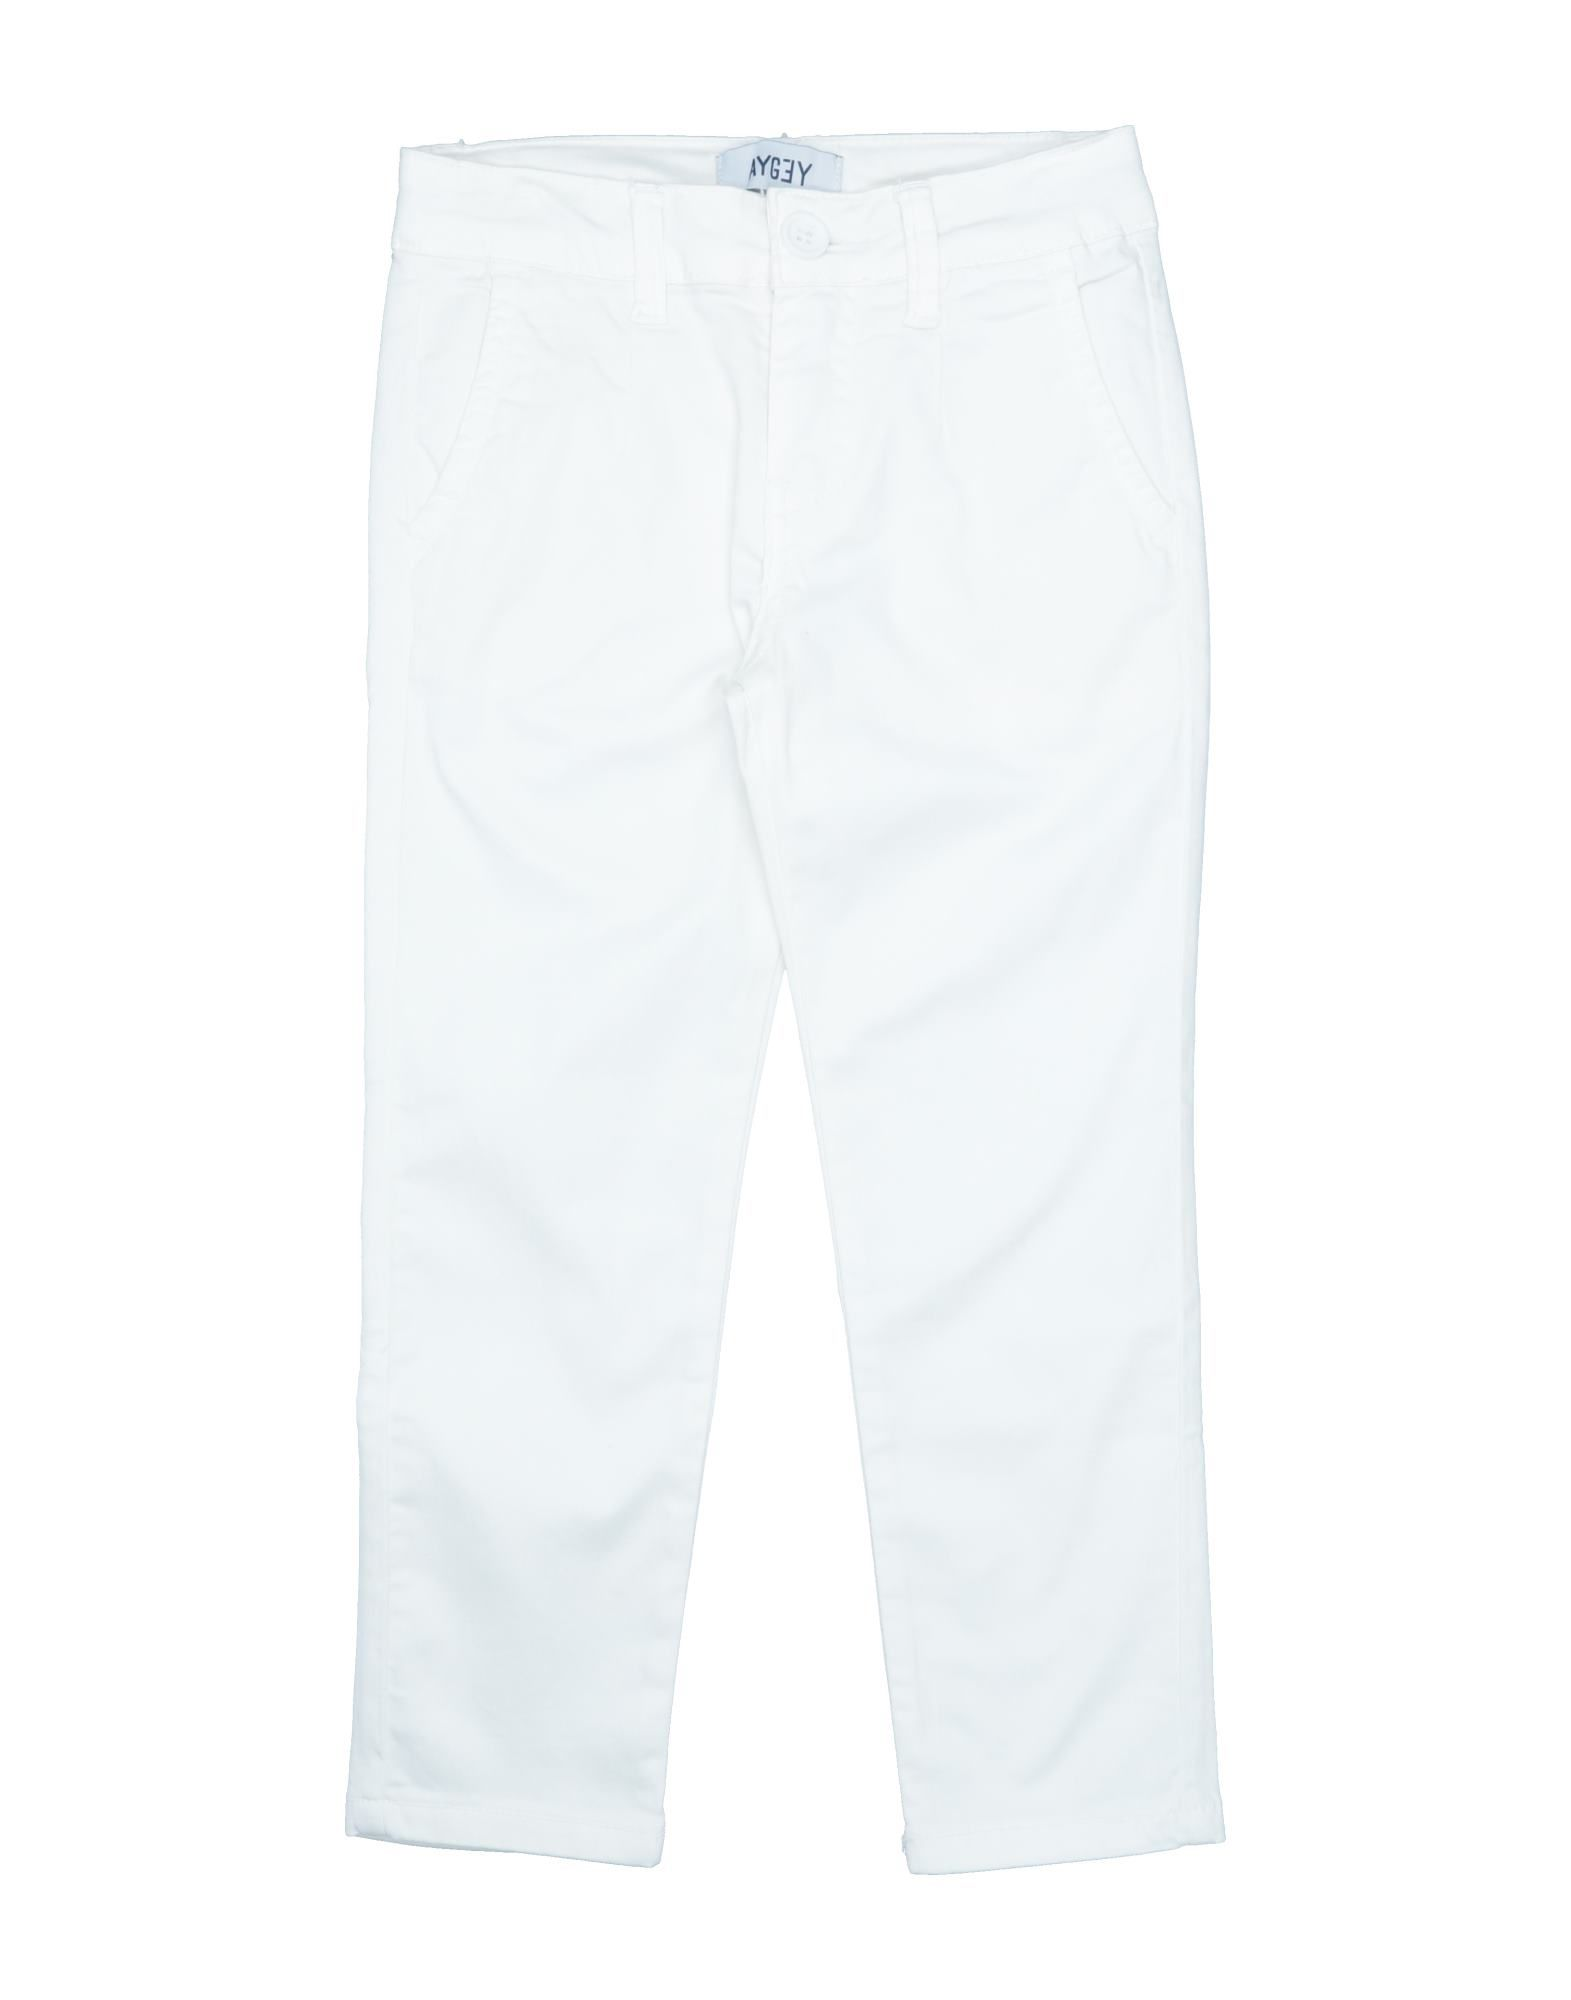 Aygey Kids' Casual Pants In White